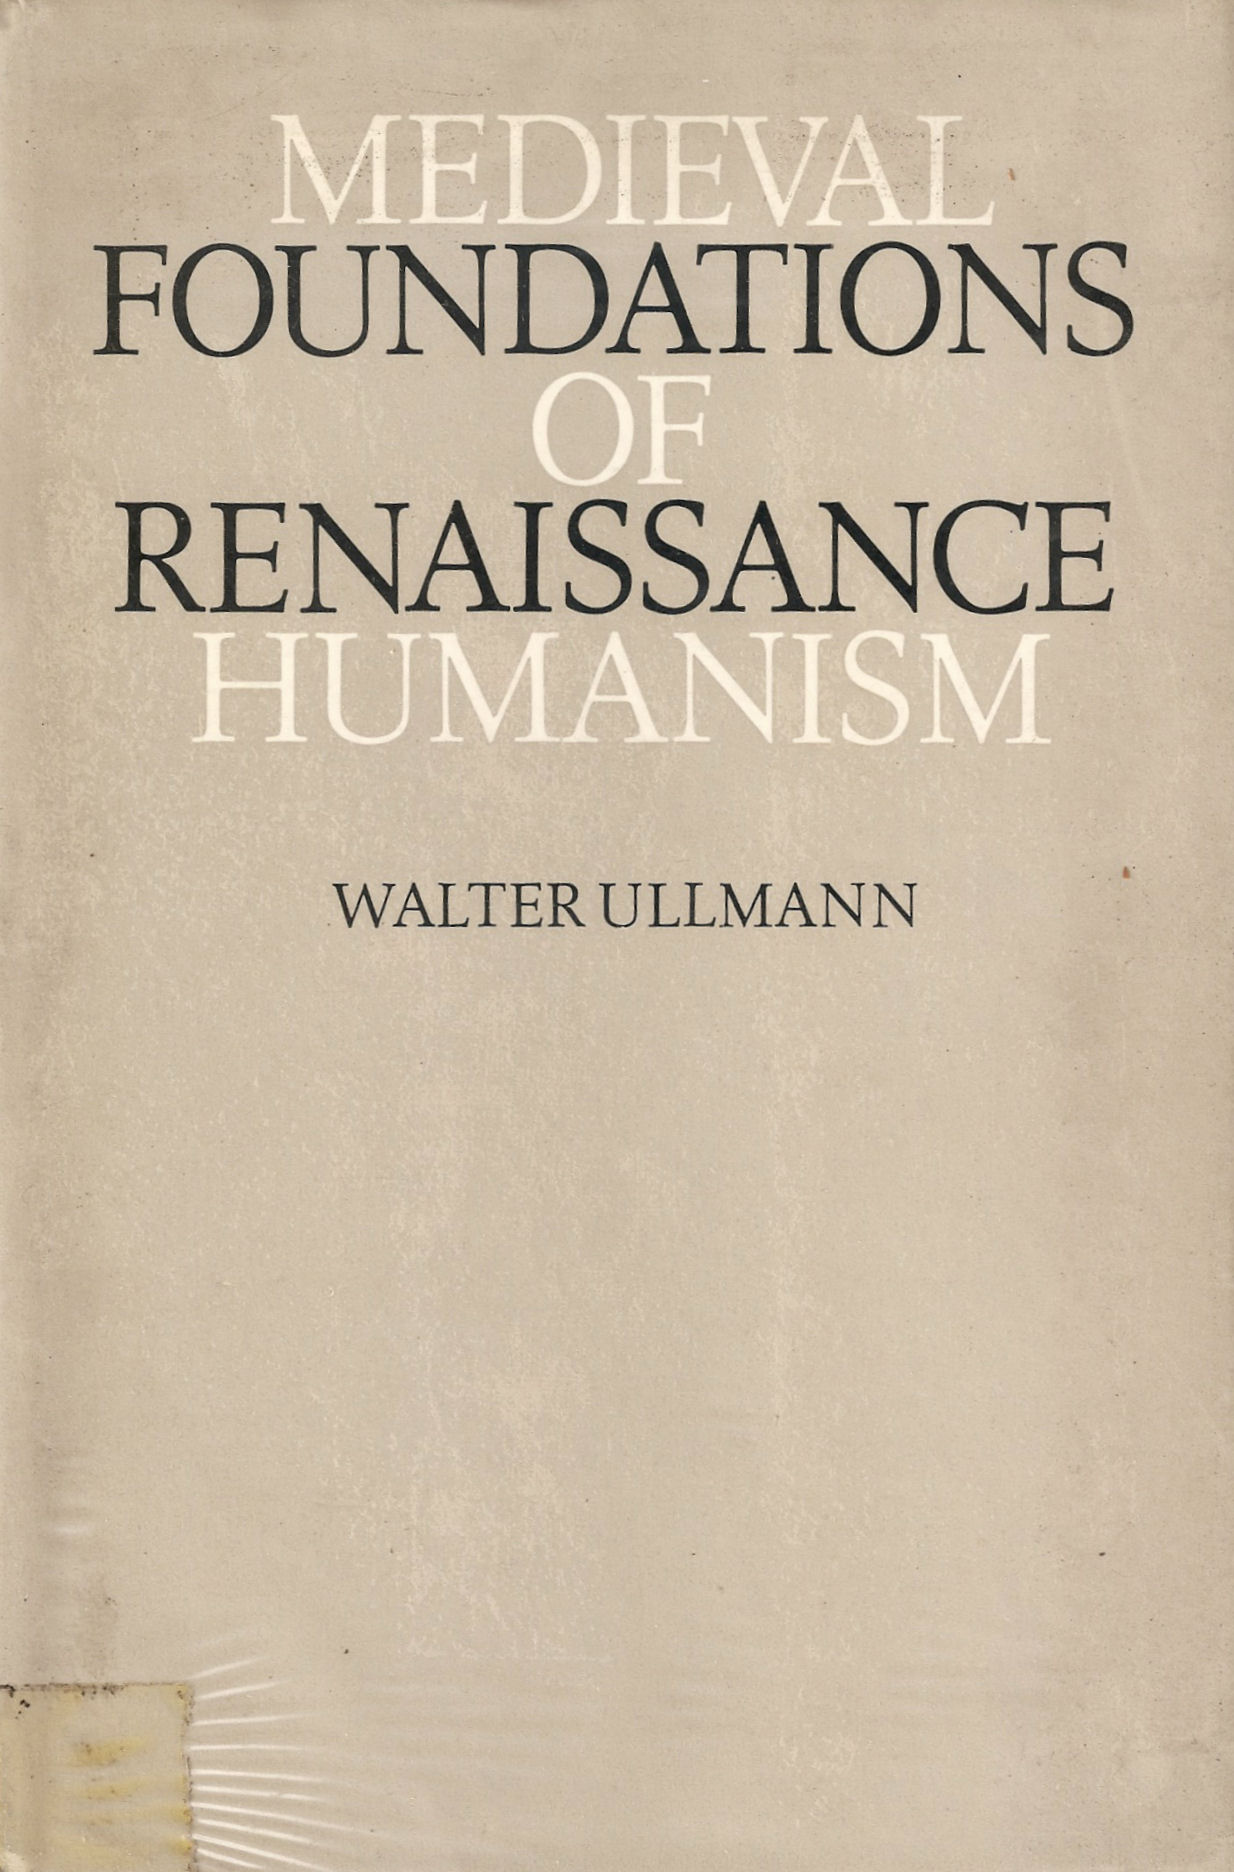 Medieval Foundations of Renaissance Humanism